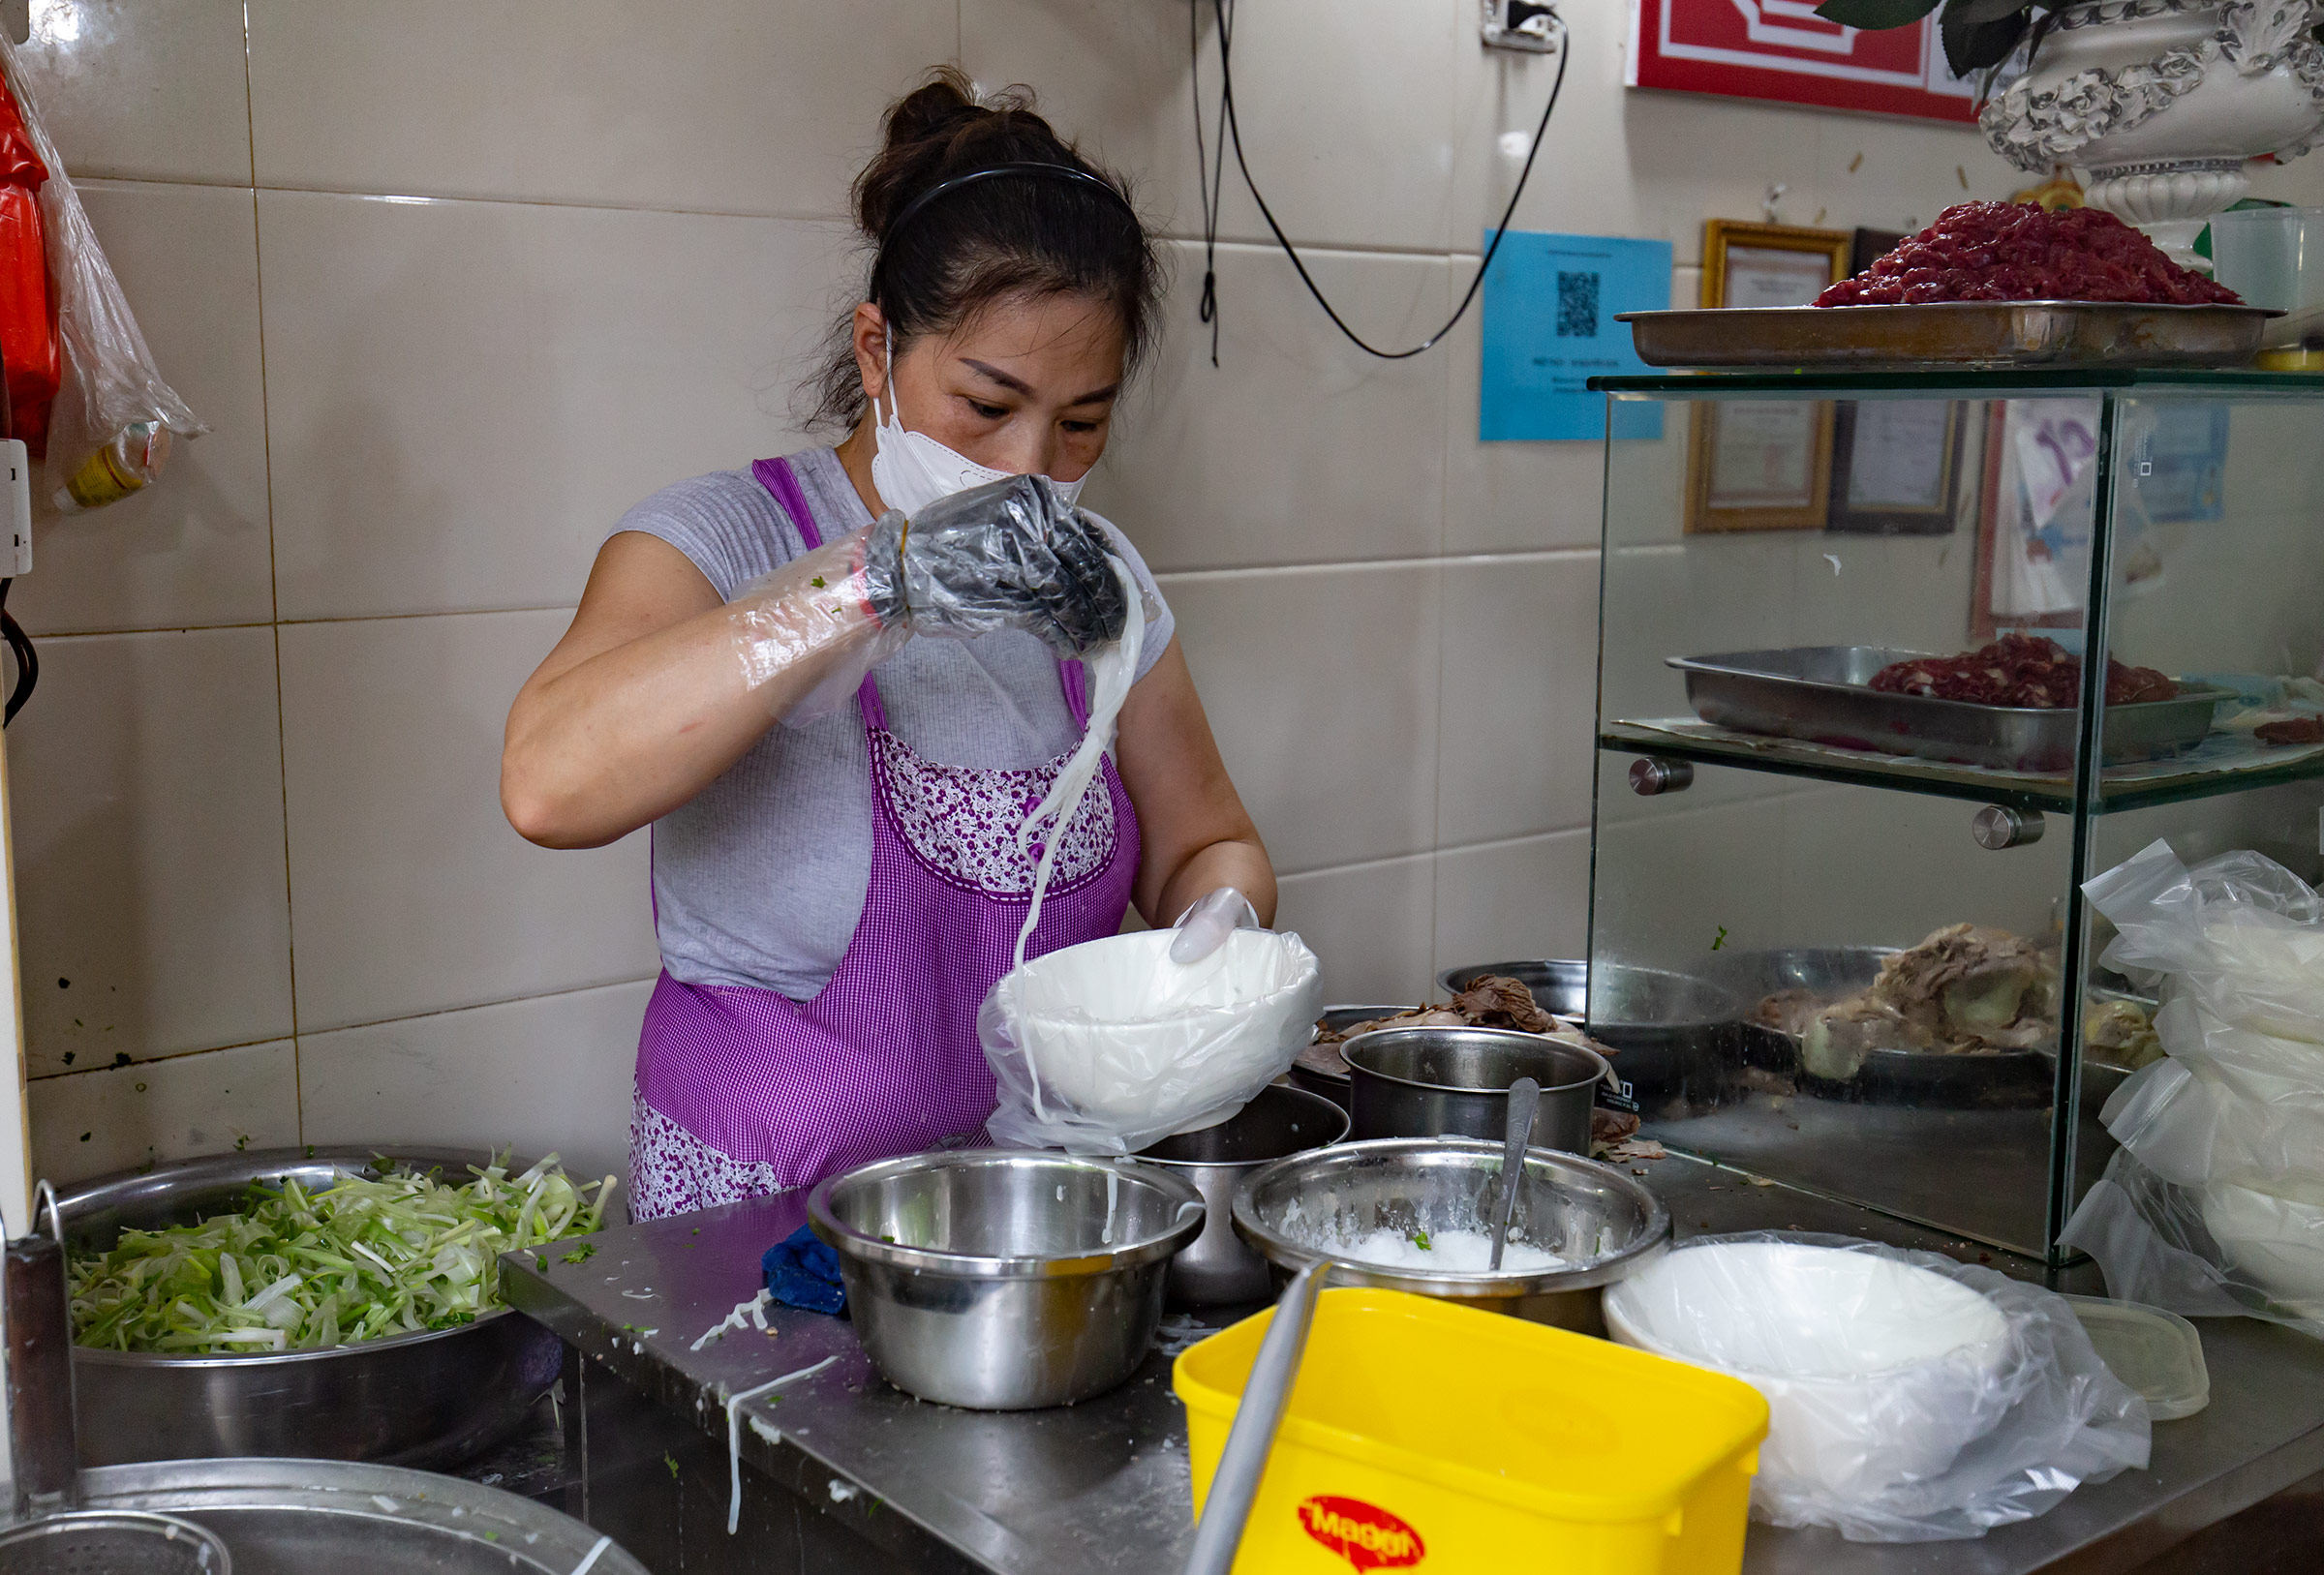 Tran Thi Thuy, owner, said she has been selling more than 1,000 bowls of pho a day since reopening.Im very happy that everyones life is gradually returning to normal.